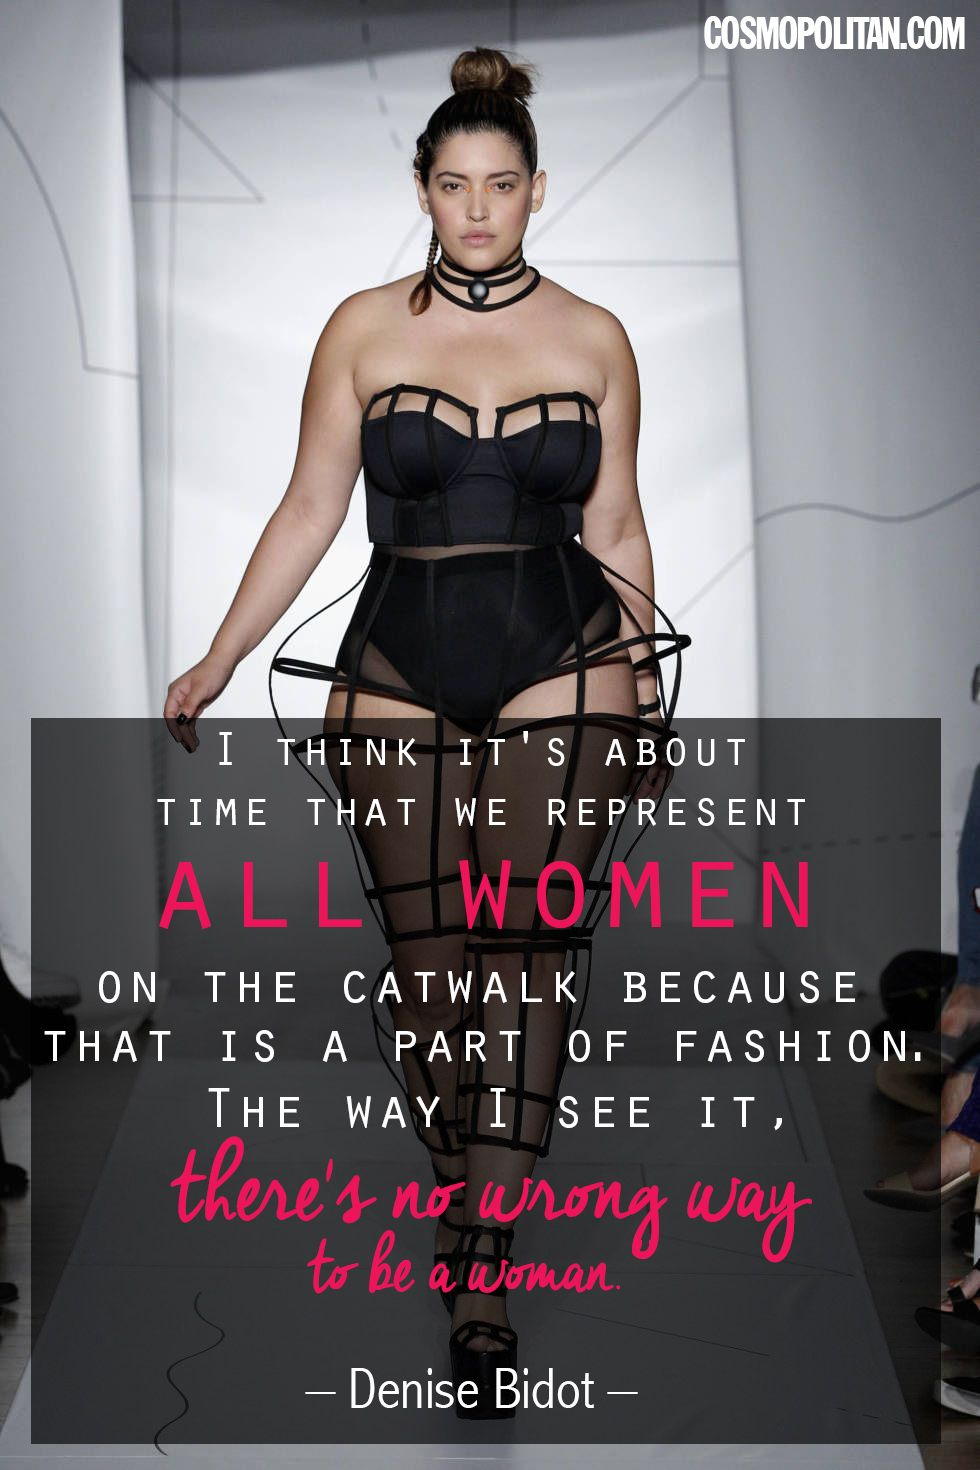 Plus-Size Model Denise Bidot: Its About Time We Represent All Women on the Catwalk